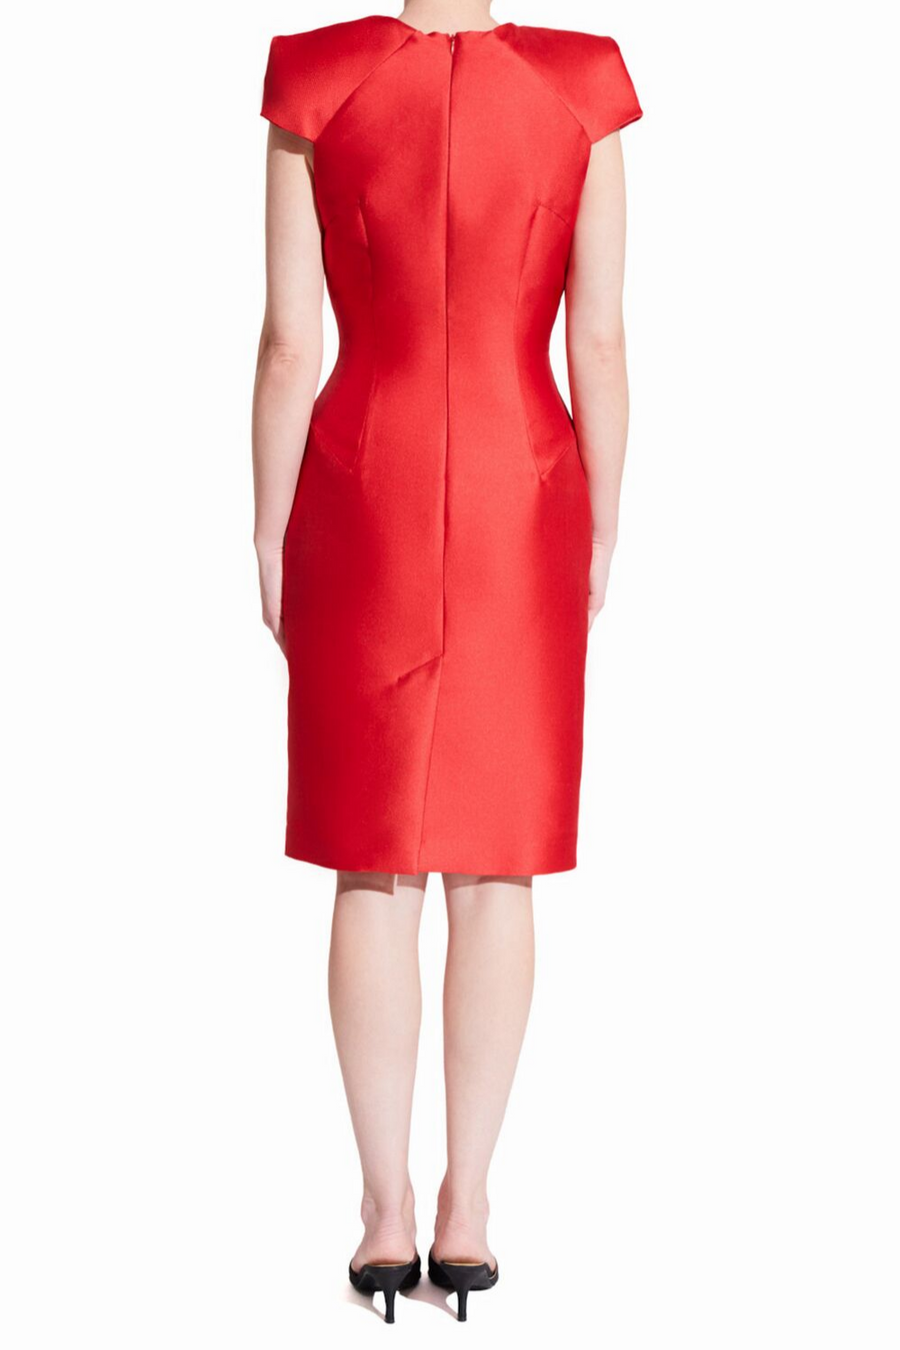 Short red bodycon cocktail dress with centered back slit and oragami style cap sleeves